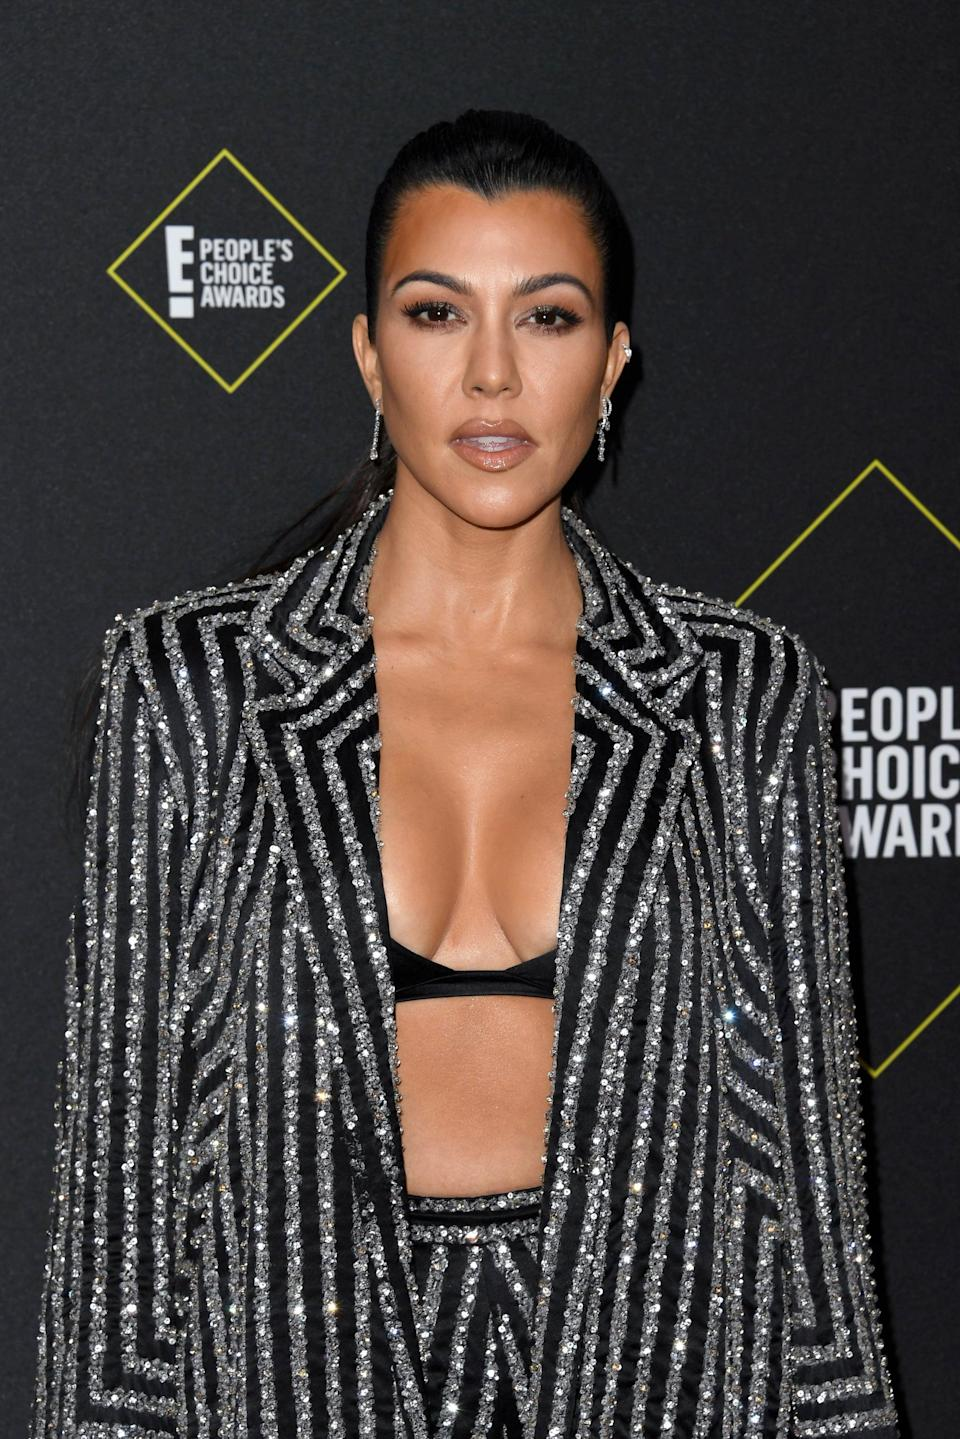 "<p>In 2010, Kourtney Kardashian told <strong>Nightline</strong> that <a href=""http://abcnews.go.com/Nightline/kardashians-nightline-interview/story?id=10689693"" class=""link rapid-noclick-resp"" rel=""nofollow noopener"" target=""_blank"" data-ylk=""slk:she's had her breast done"">she's had her breast done</a>, but she wasn't ashamed about having the procedure done at all. ""I have had breast implants, but it's so funny 'cause it's not a secret, I could care less,"" she said.</p>"